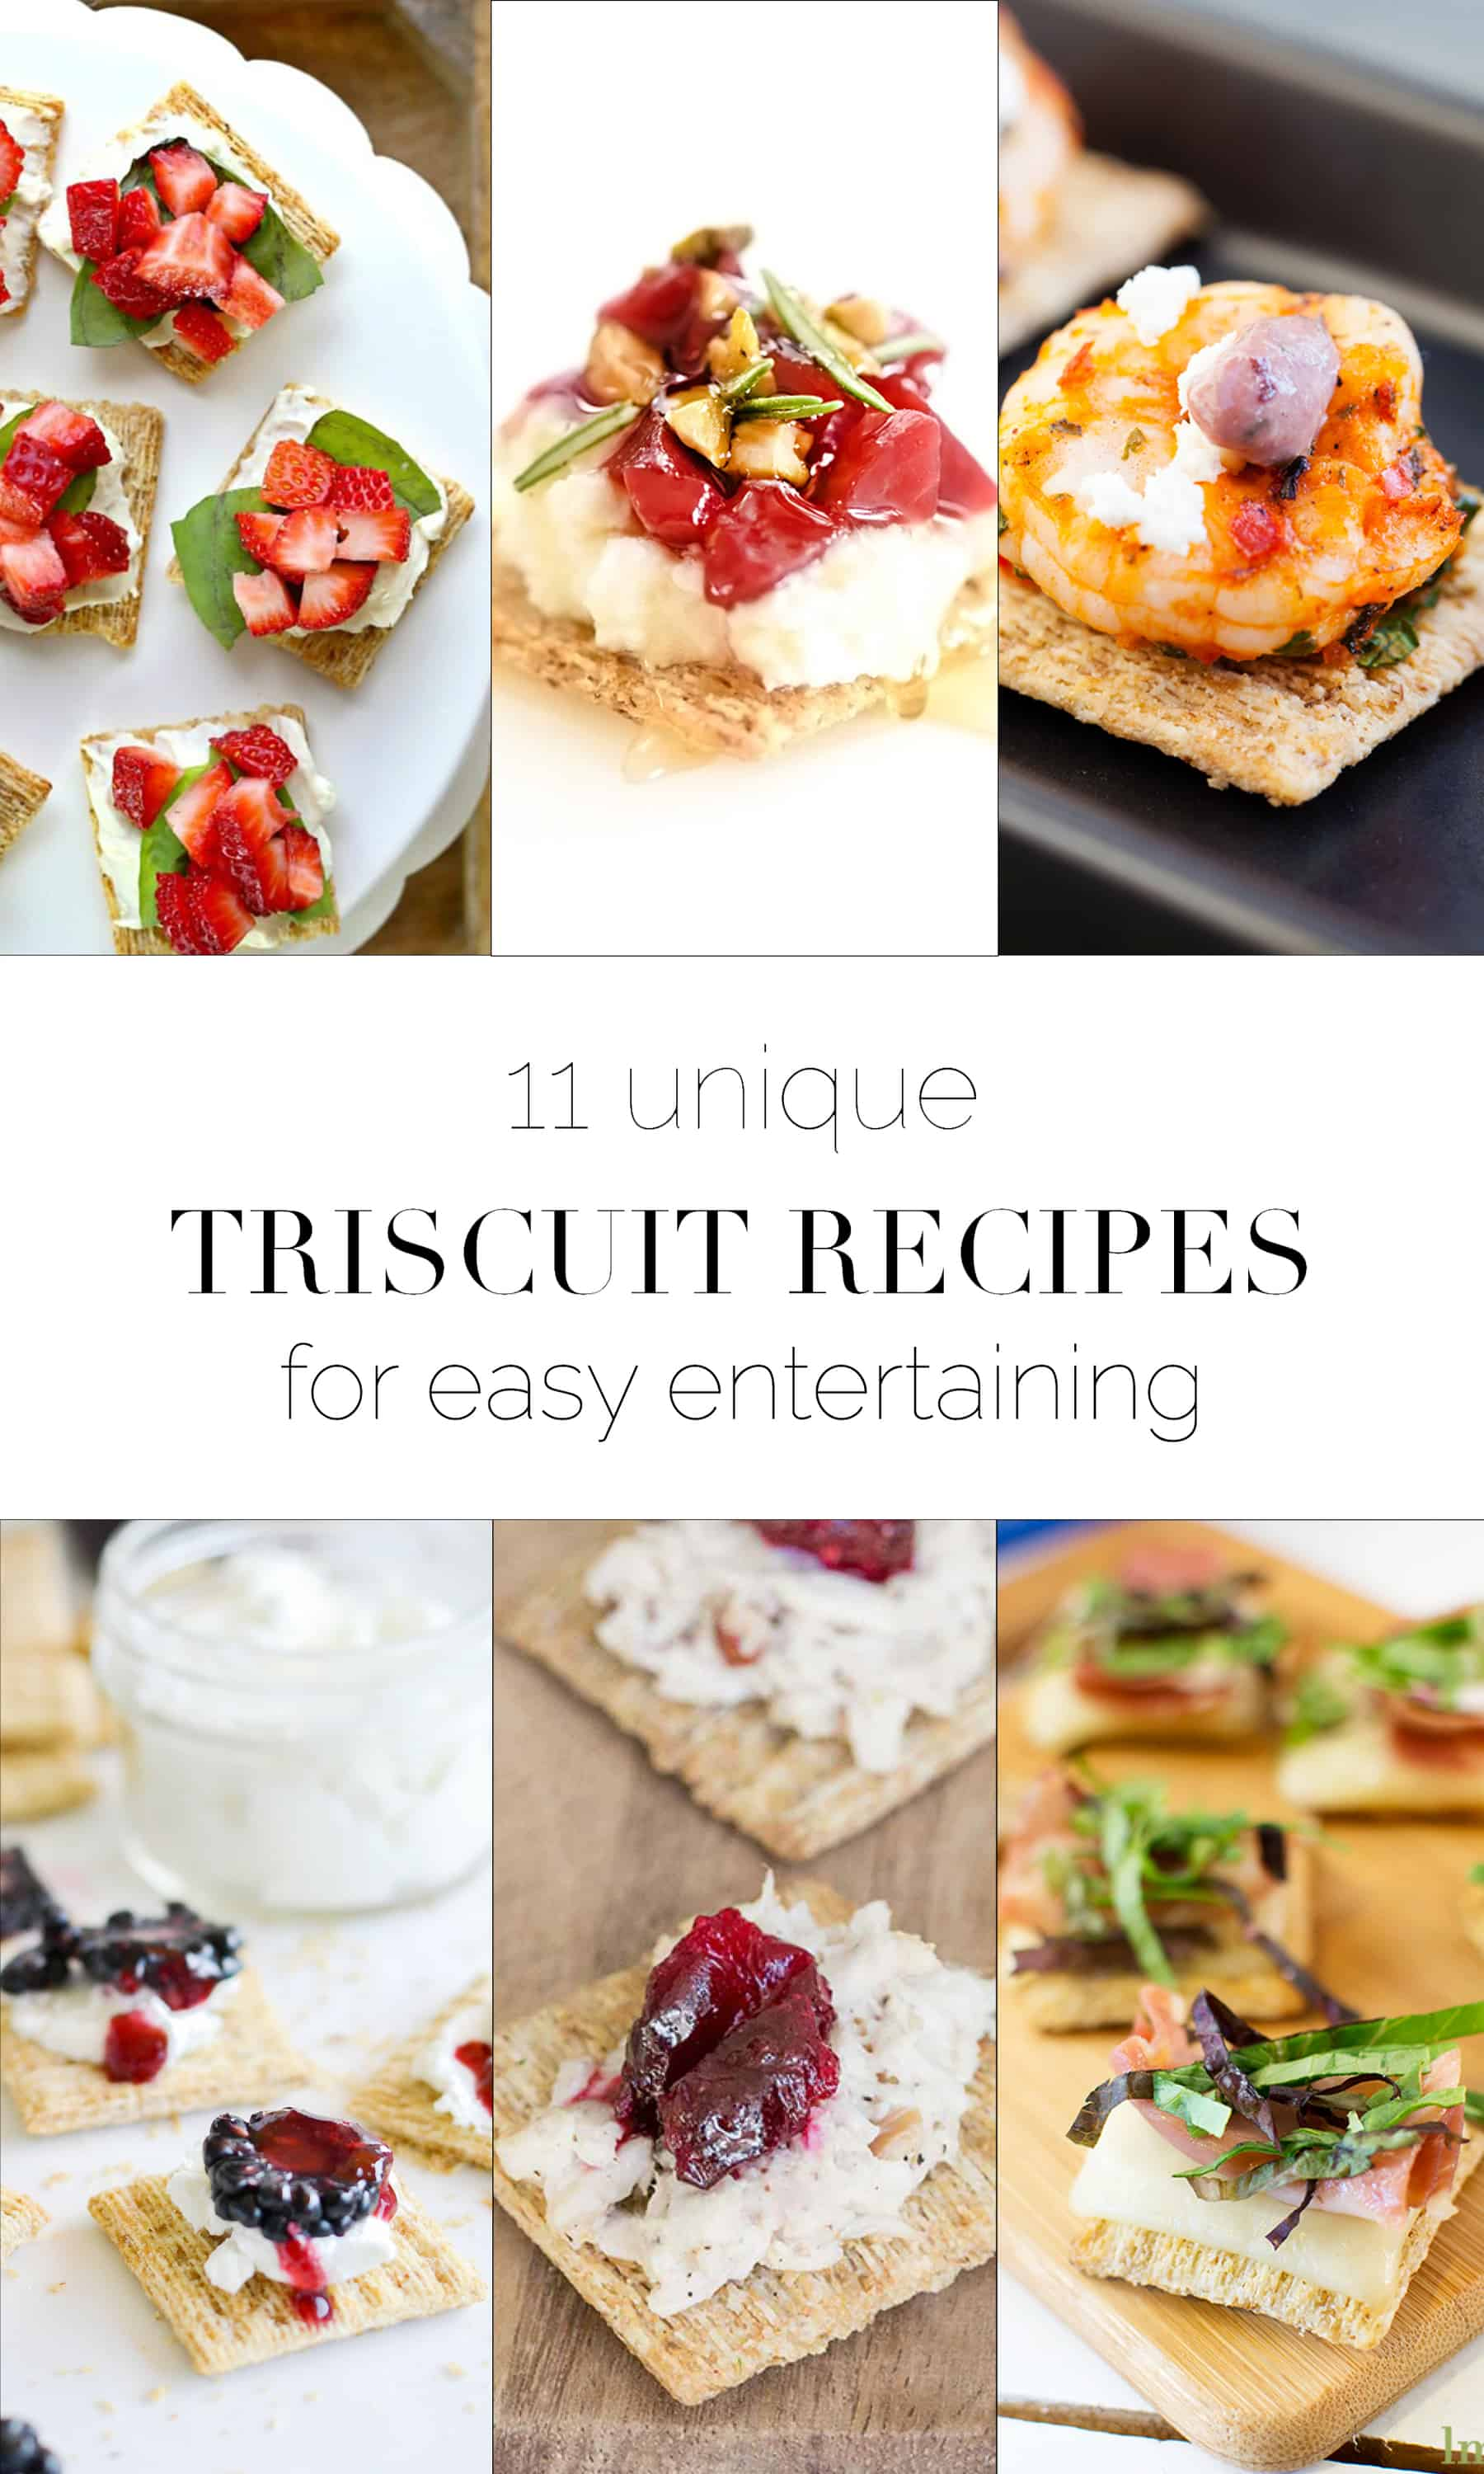 Triscuit Recipes for Entertaining